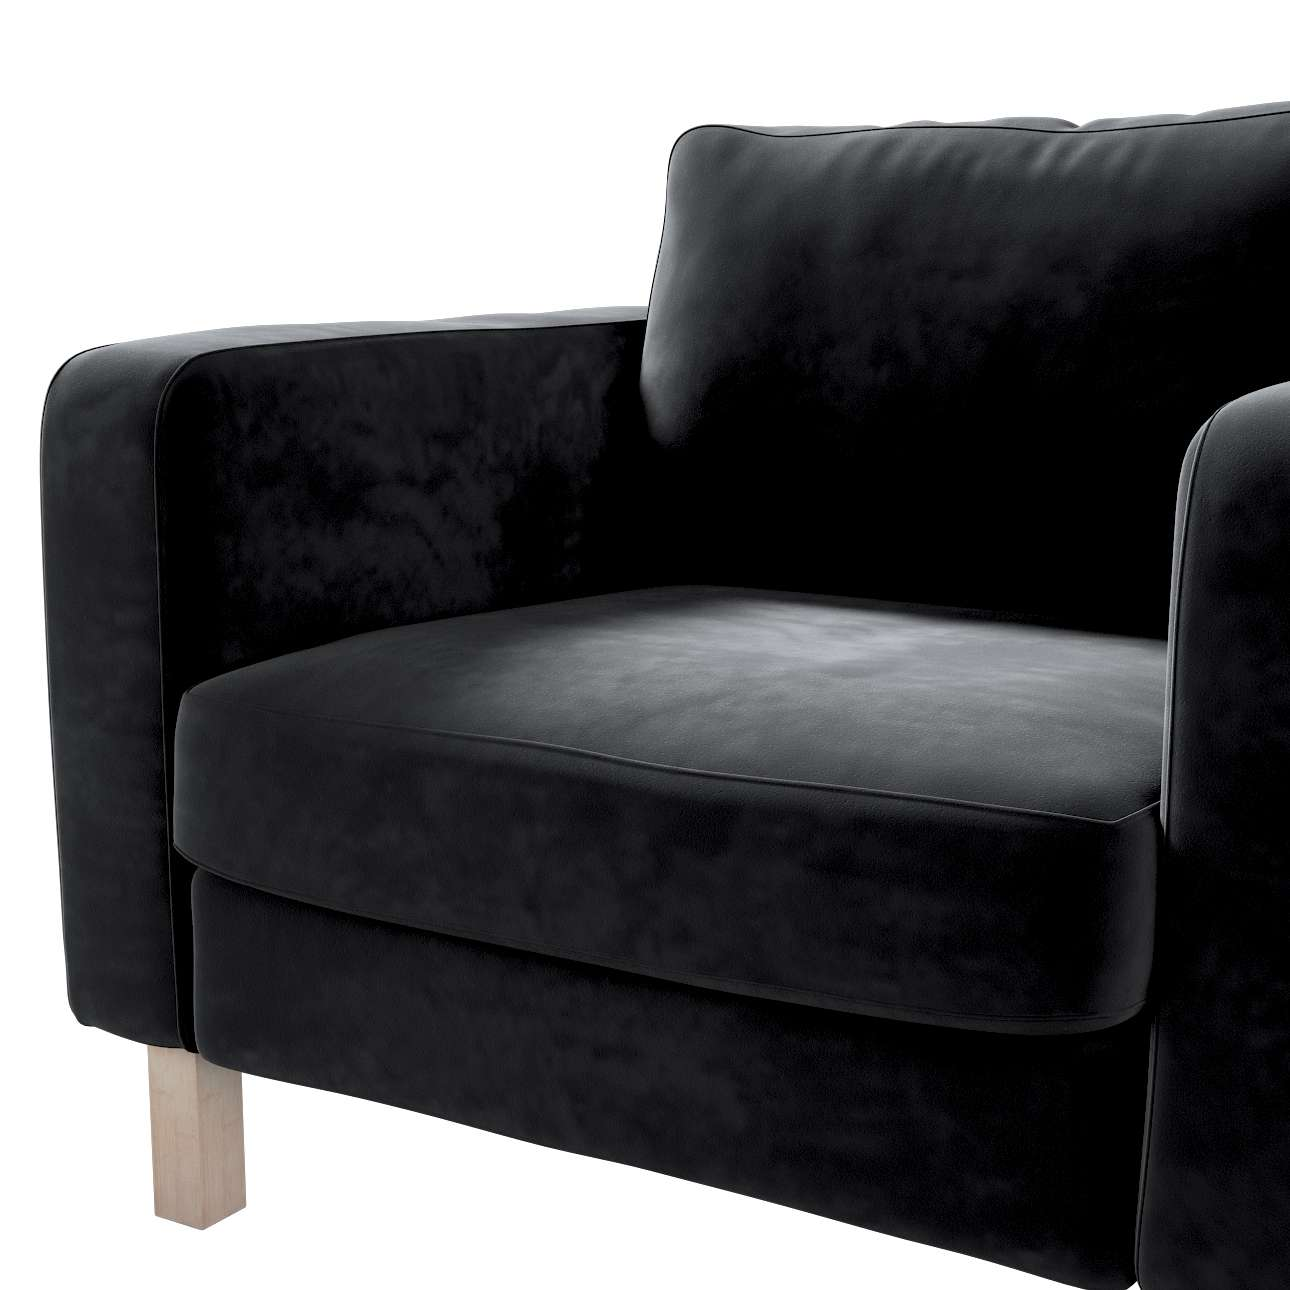 Karlstad armchair cover in collection Velvet, fabric: 704-17